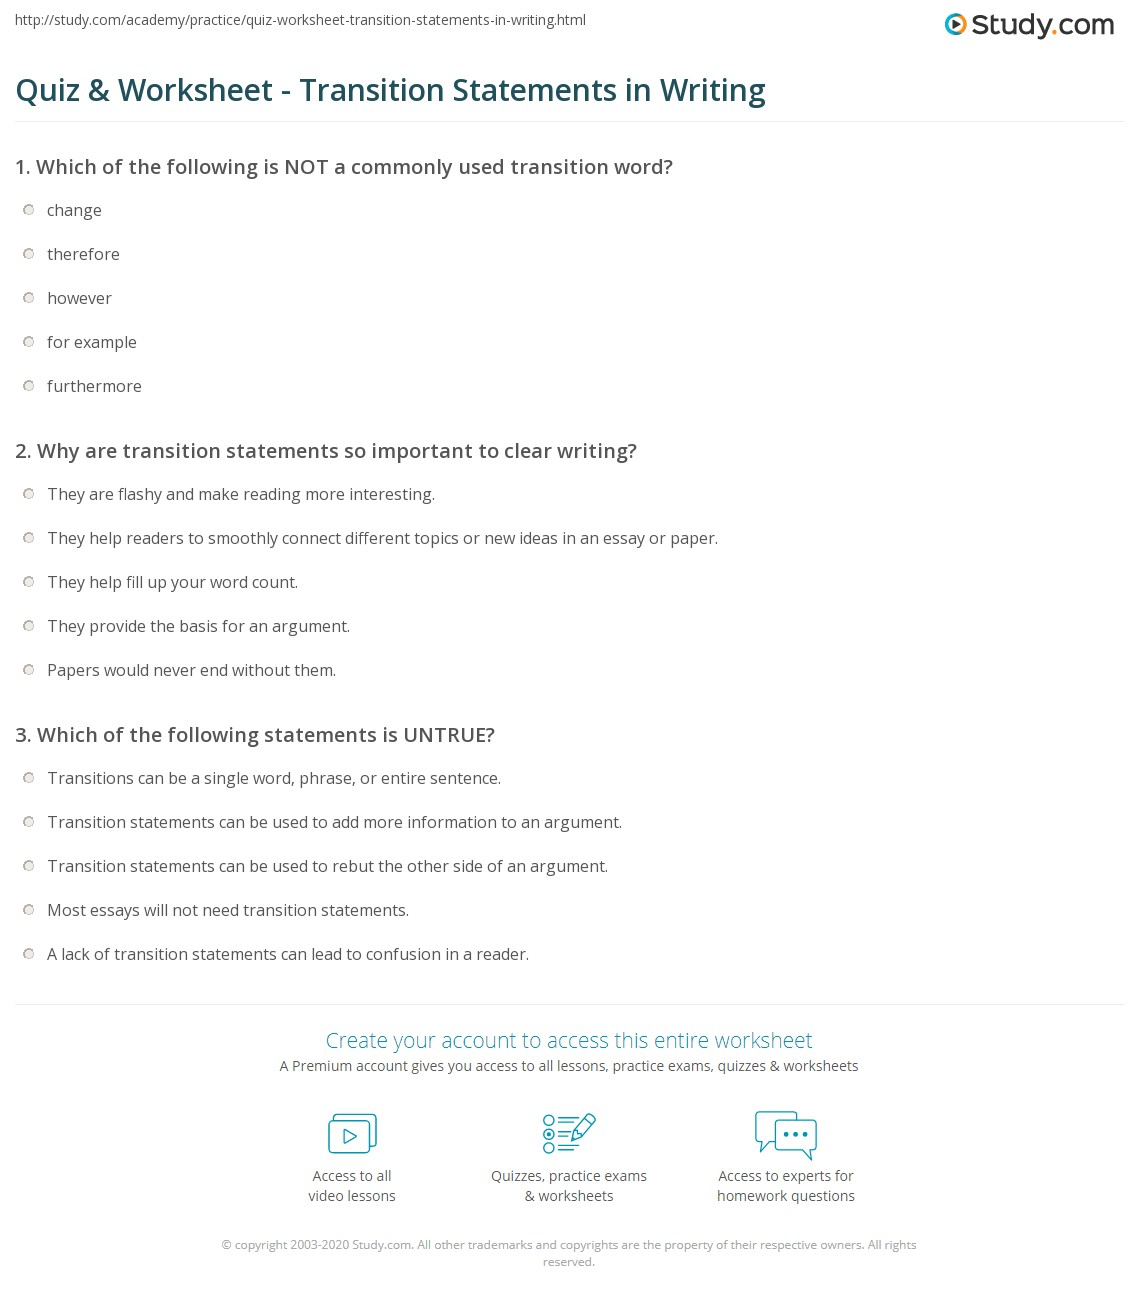 Quiz & Worksheet - Transition Statements in Writing | Study.com